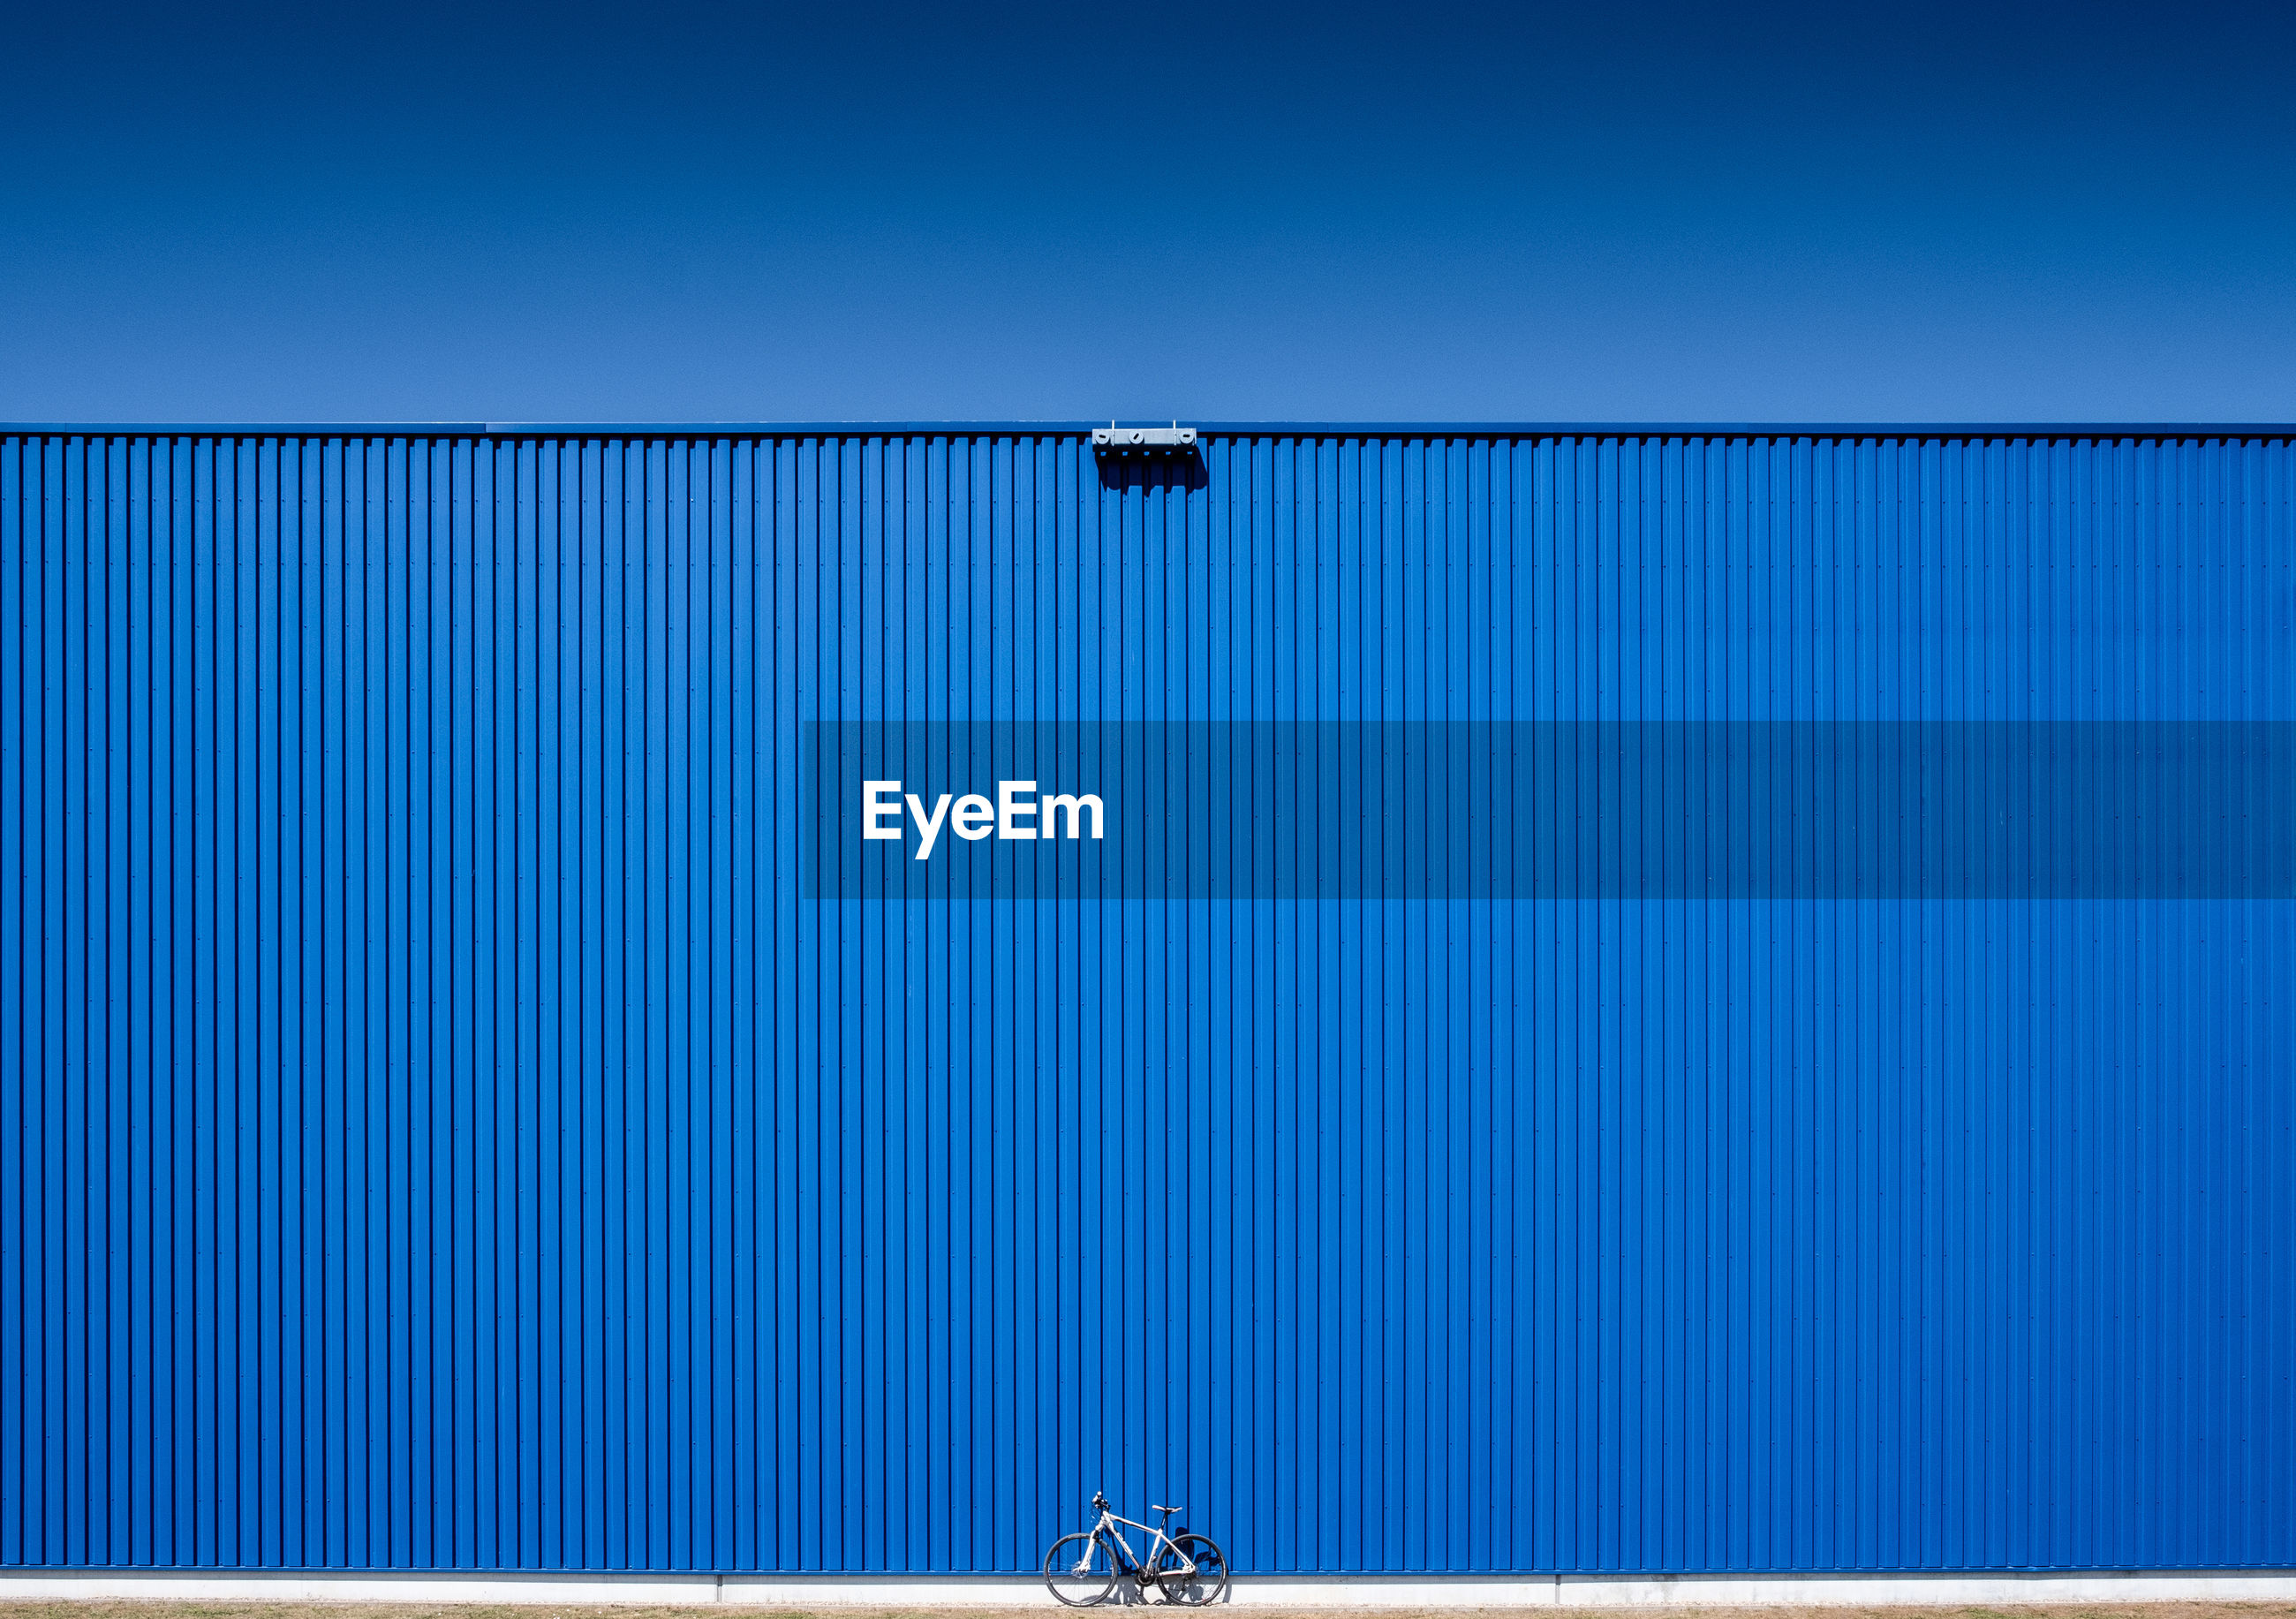 Low angle view of blue container against clear sky